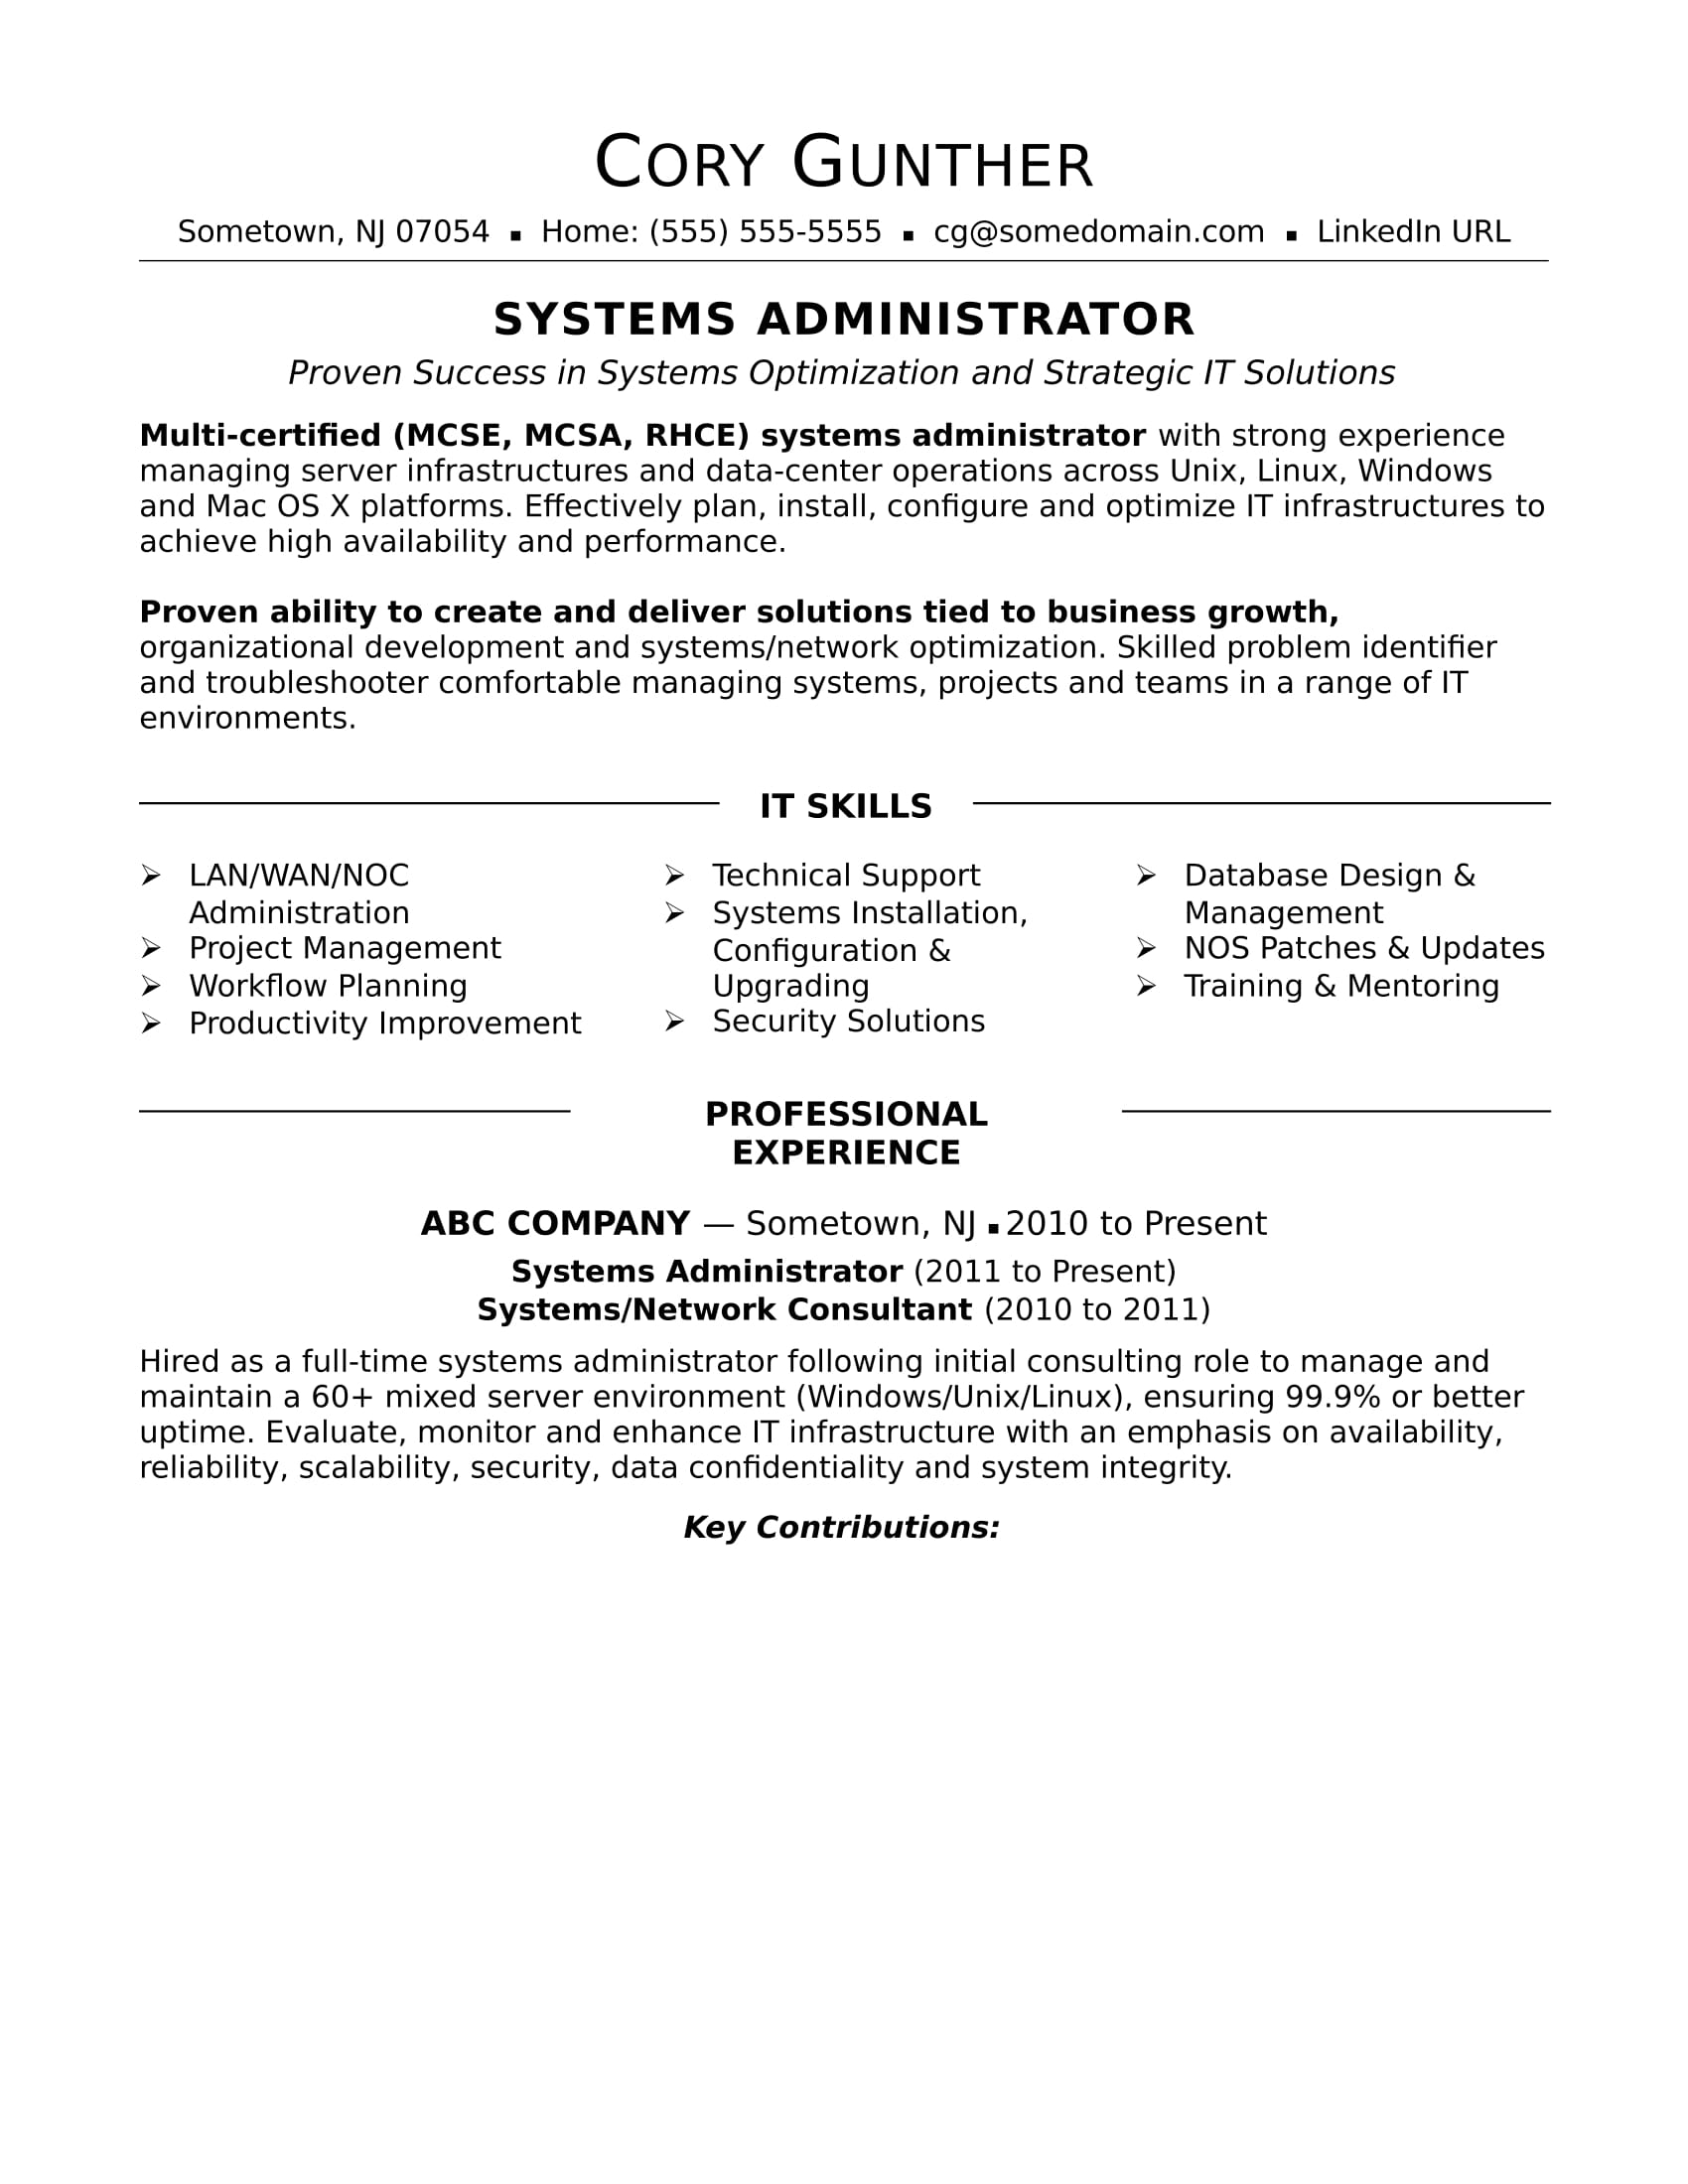 sample resume for an experienced systems administrator monster unix supervisor Resume Unix Administrator Resume Sample